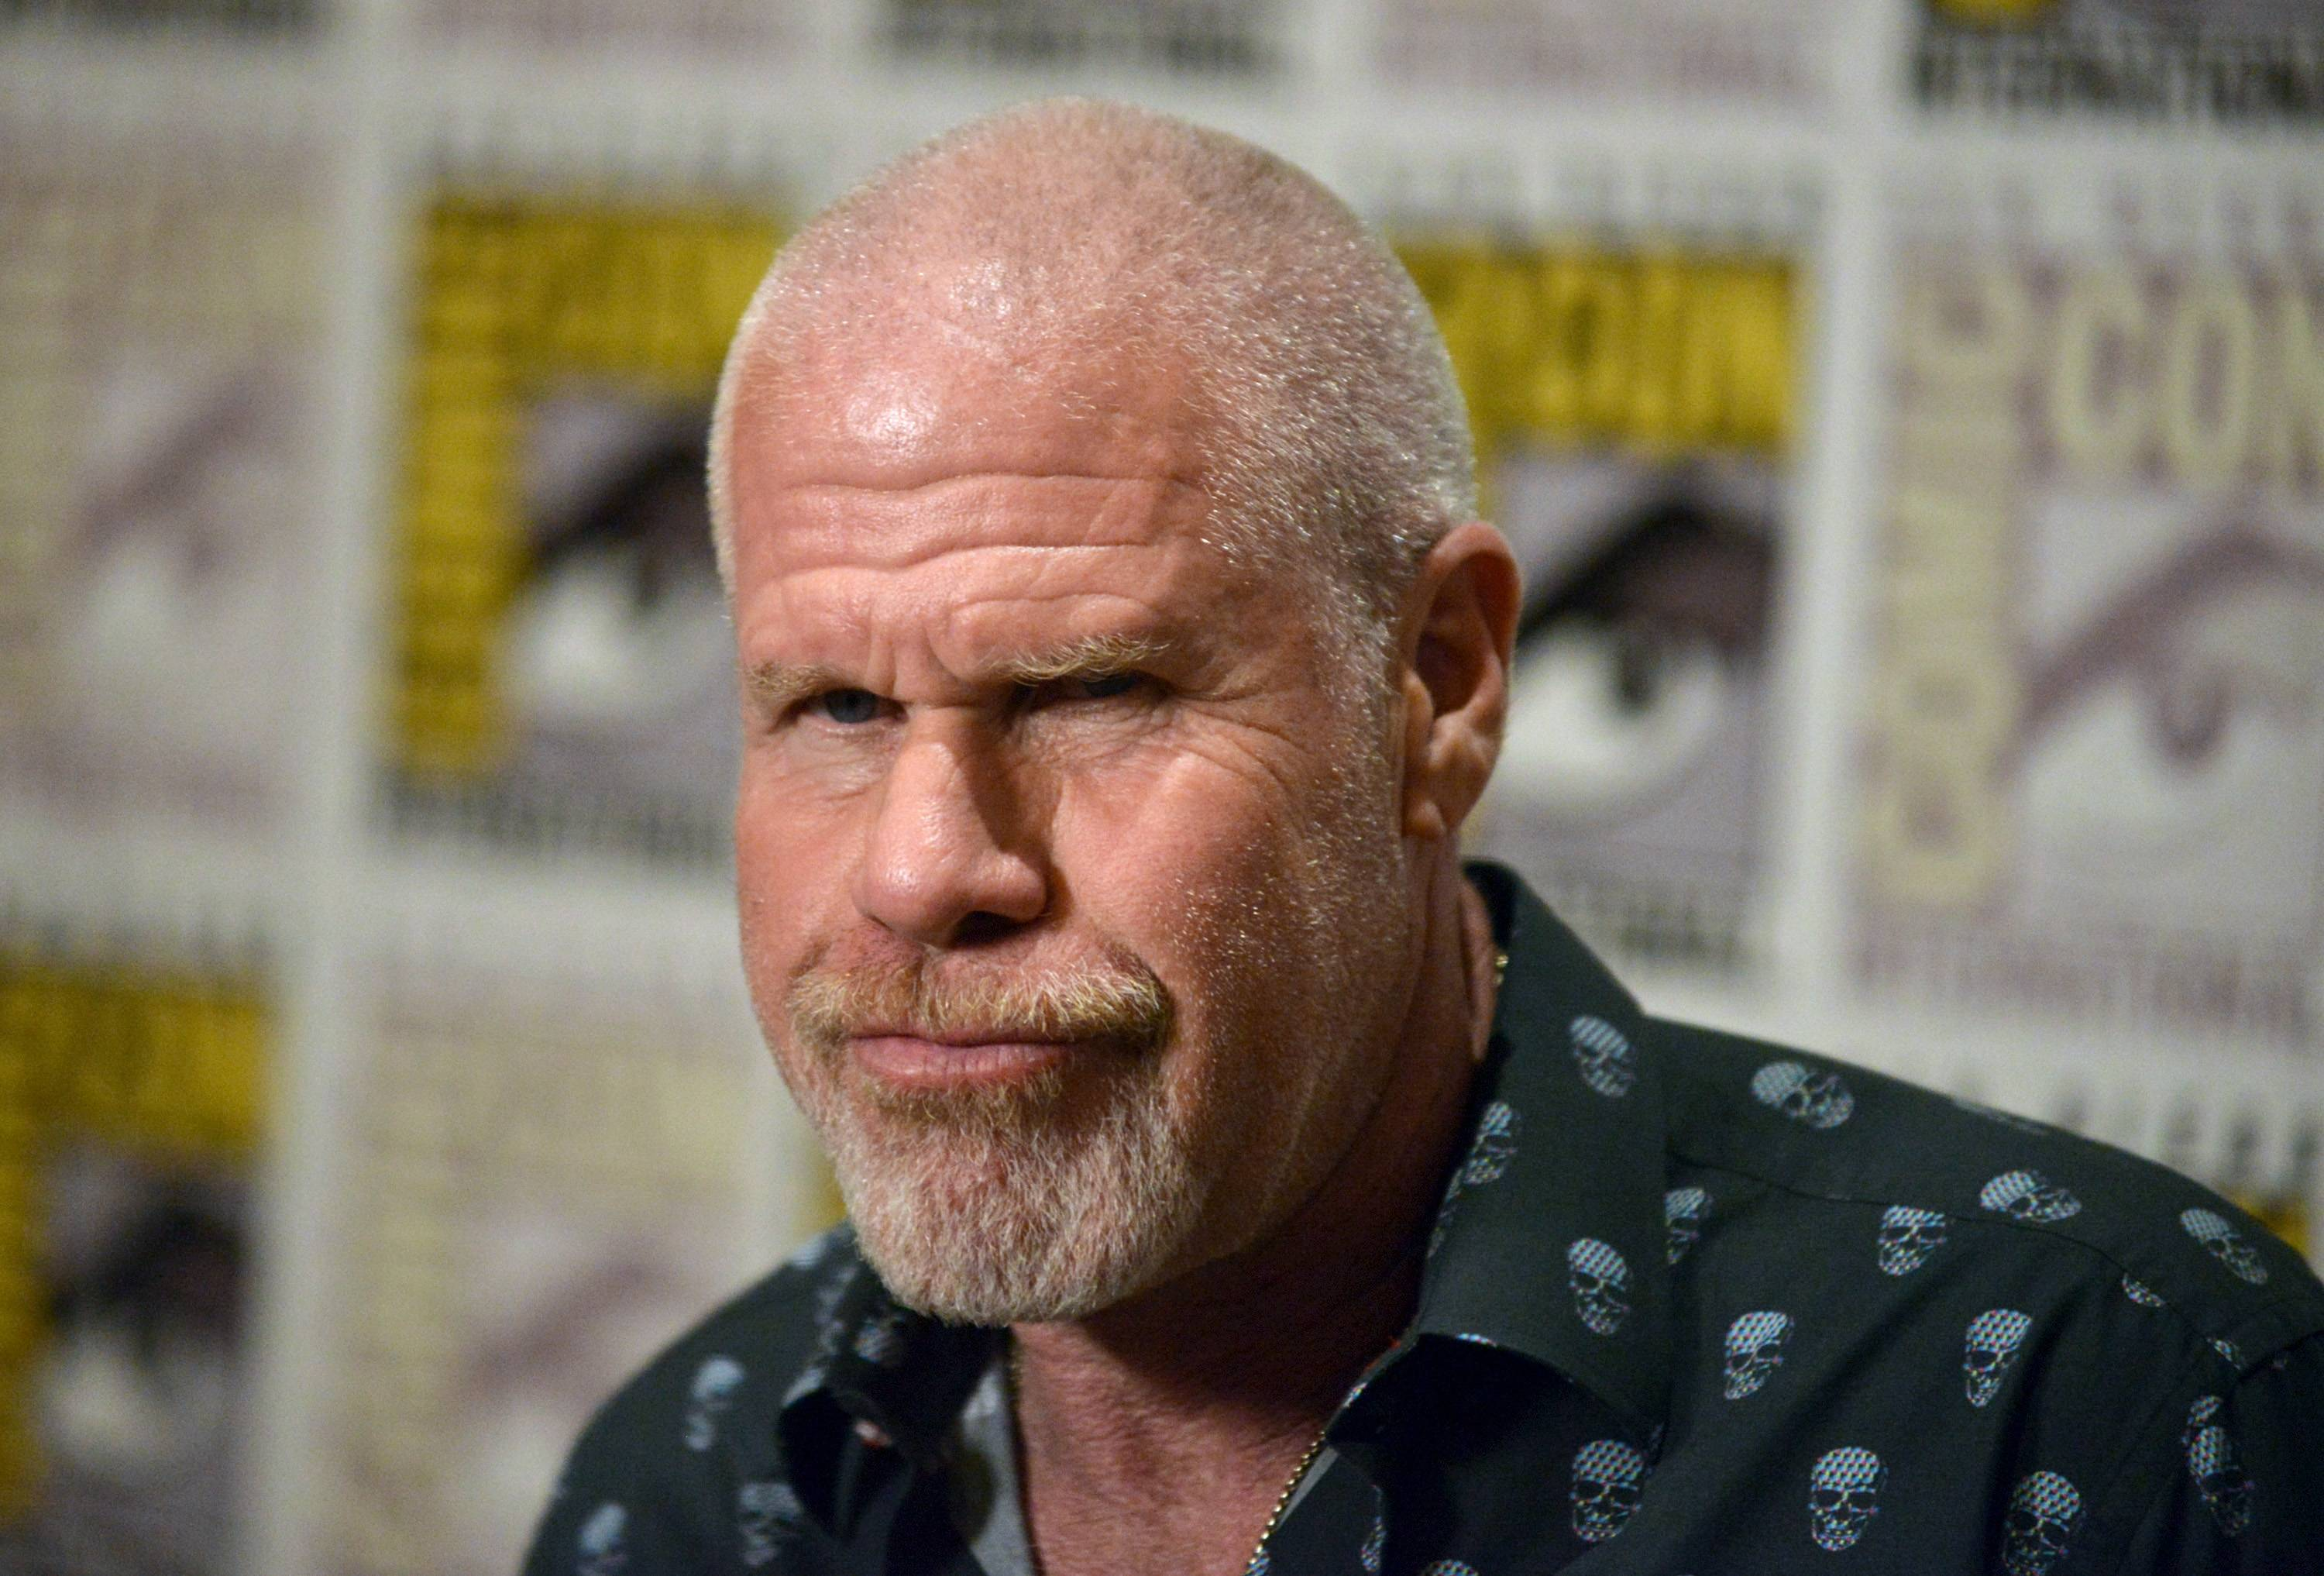 Ron Perlman attends 20th Century Fox press line on Day 2 of Comic-Con International on Friday.